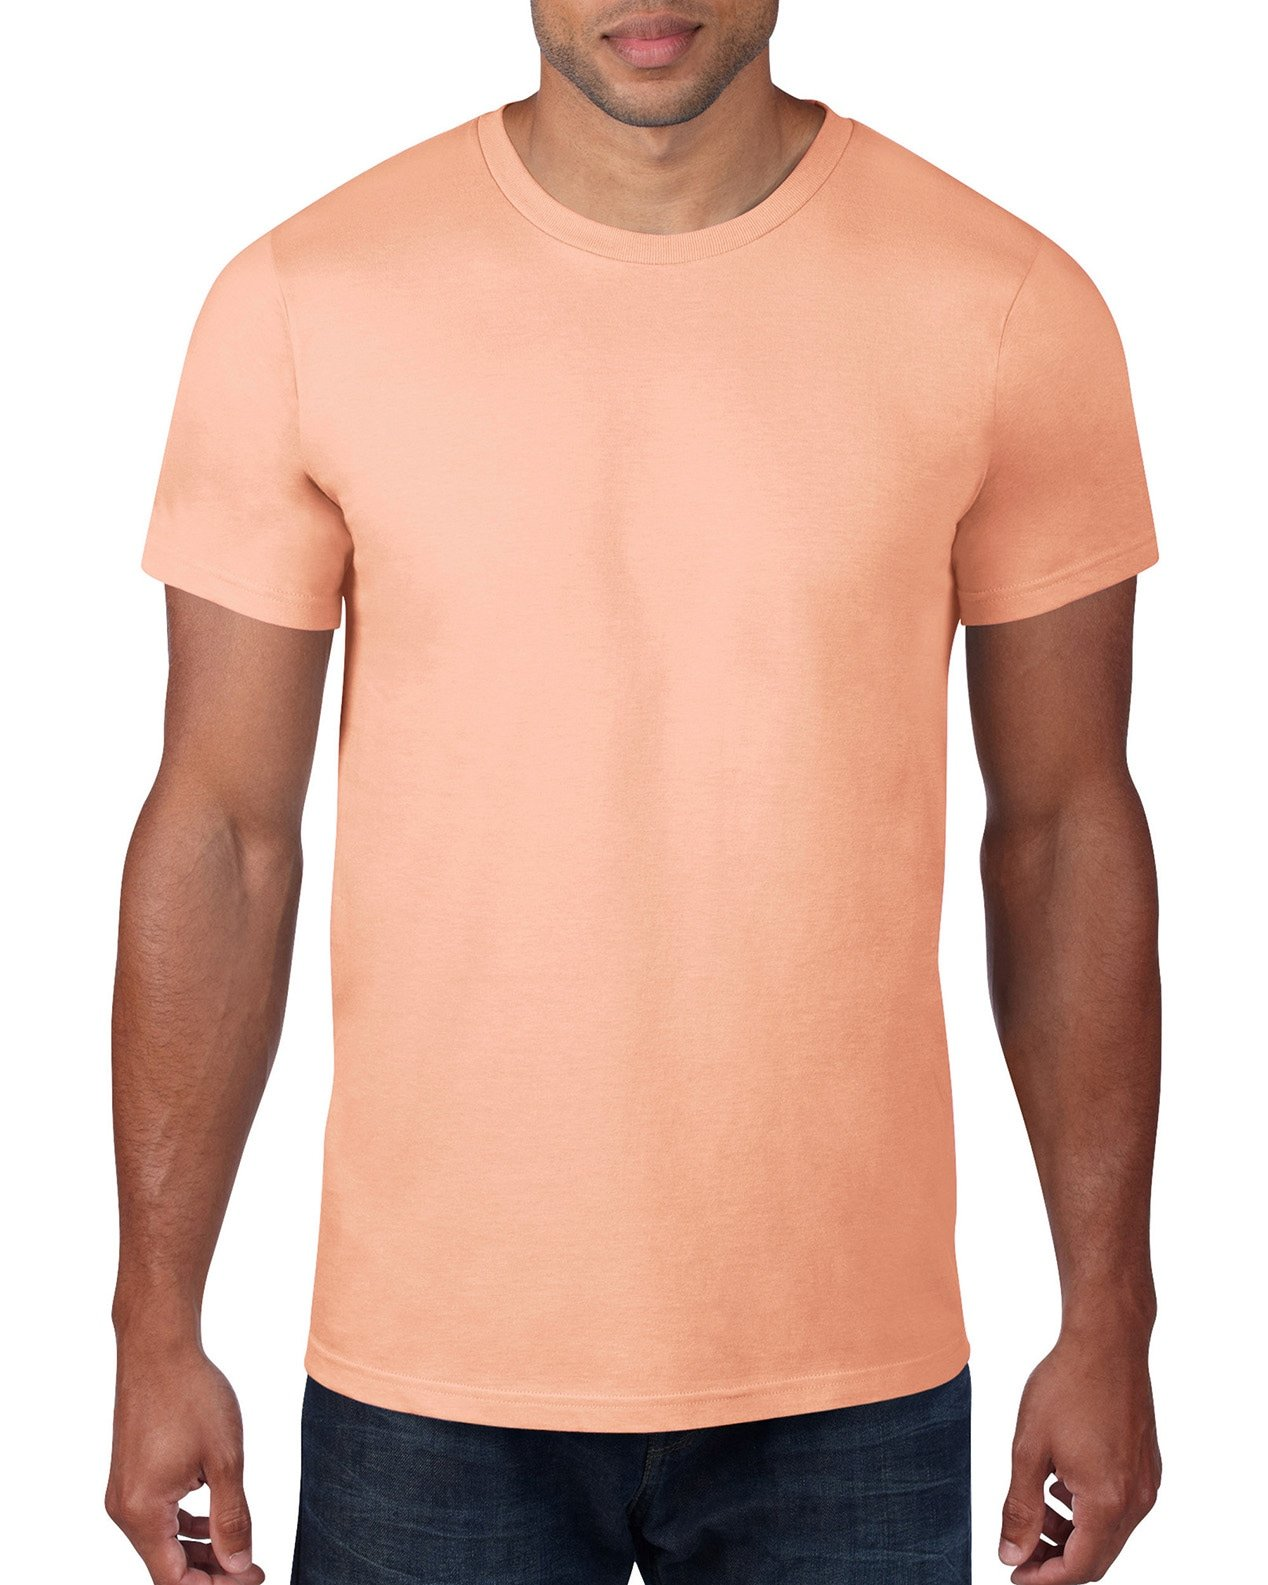 Anvil Mens Fashion Fit Ringspun T-Shirt (980) -Dusty Rose -L